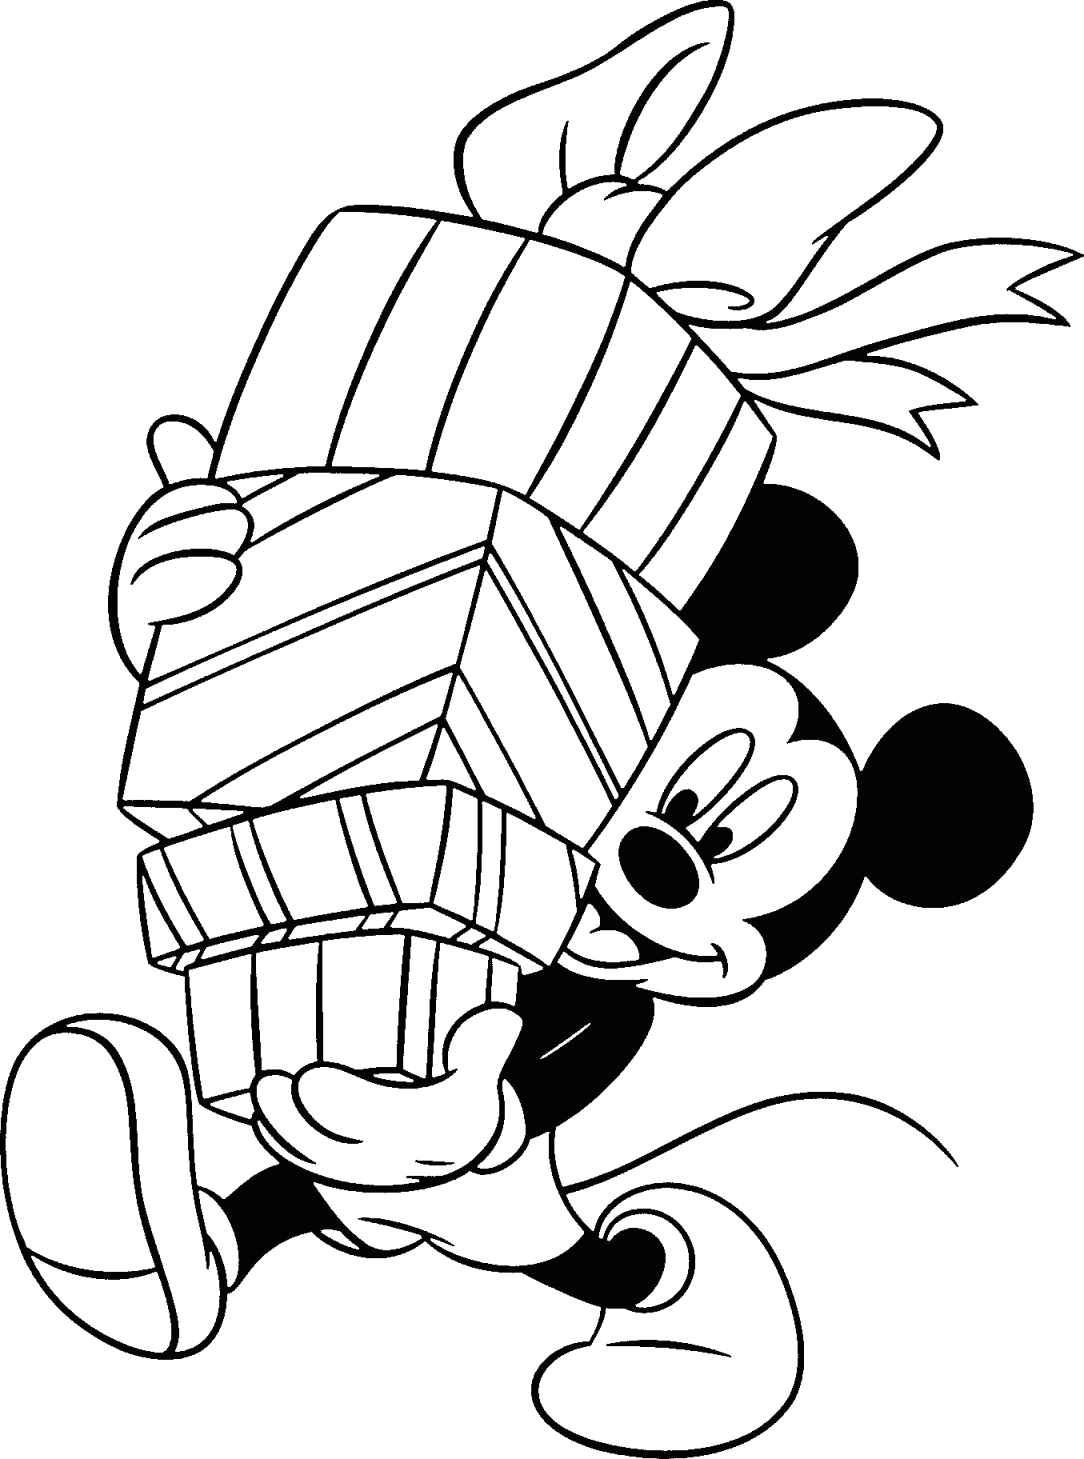 Free Christmas Coloring Pages to Print Disney Free Disney Christmas Printable Coloring Pages for Kids